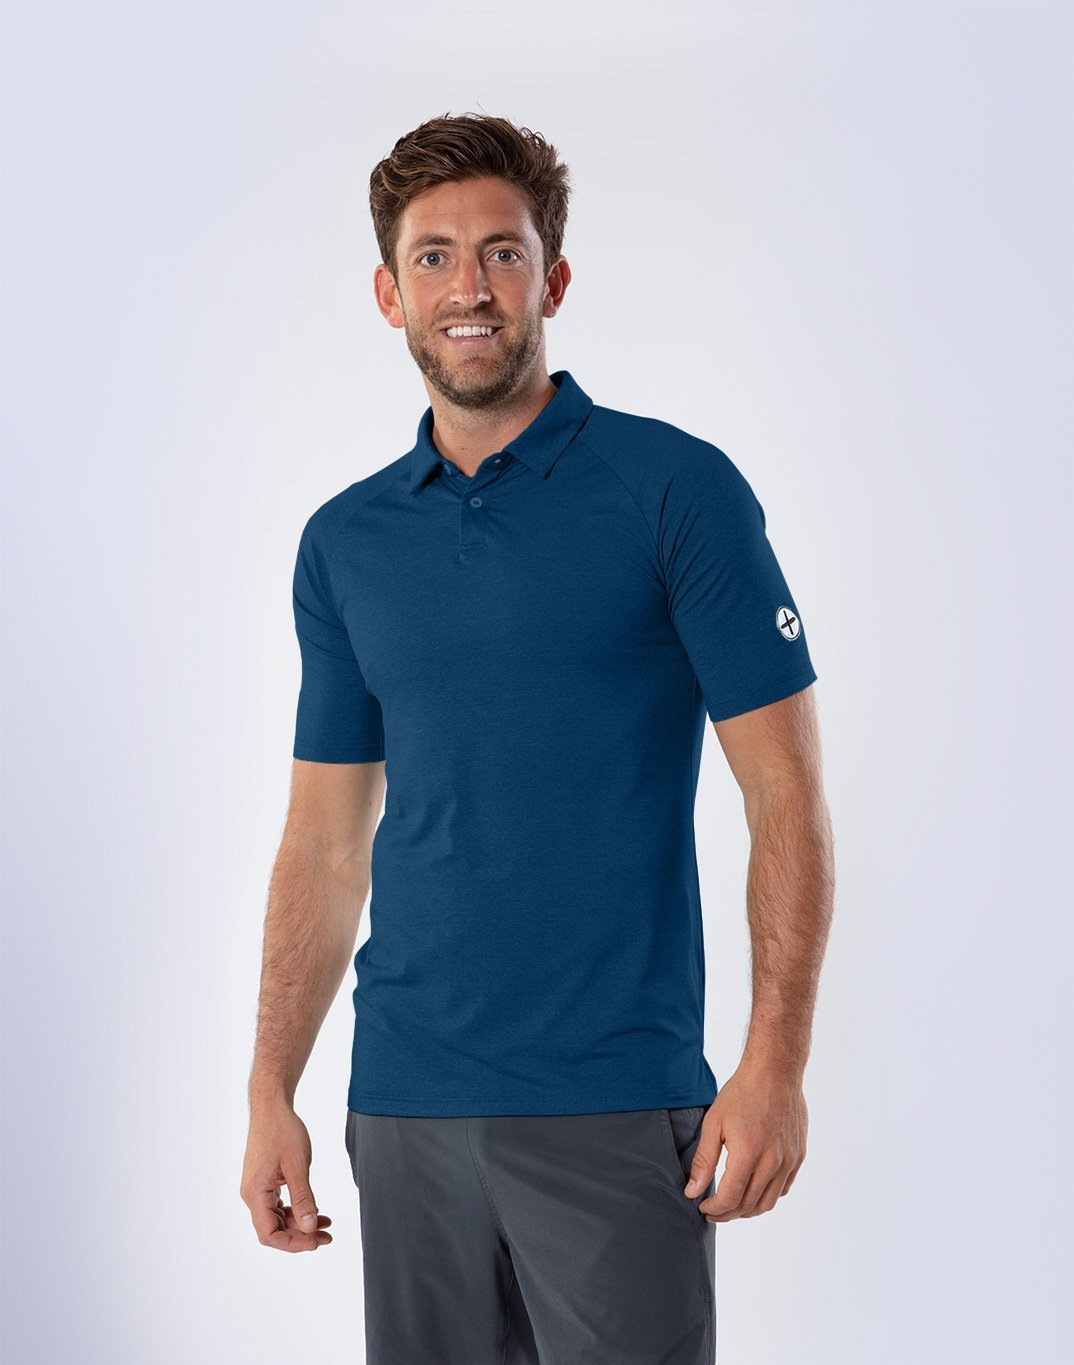 Gym Plus Coffee T-Shirt Men's Navy Marco Polo Designed in Ireland